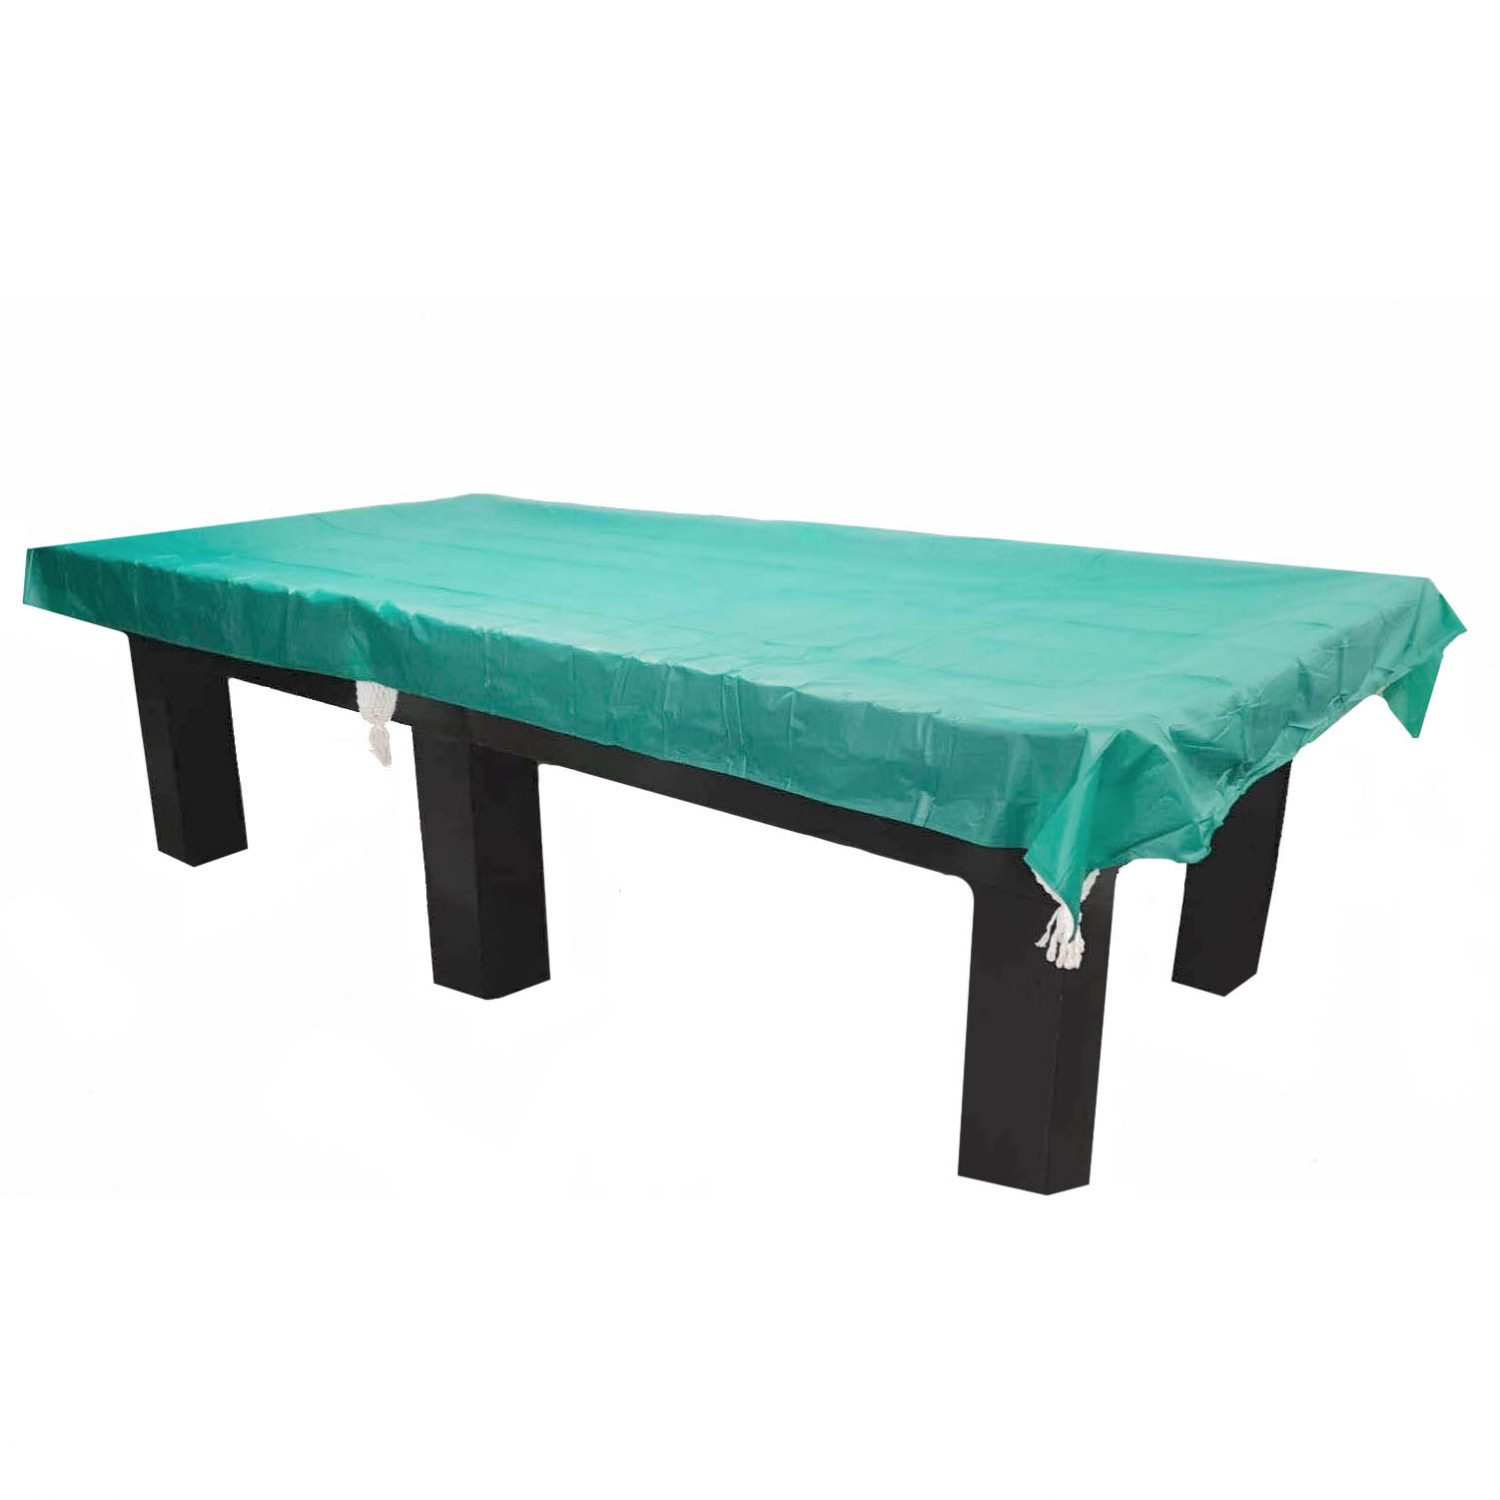 Pool Table Cover 8'x4' 1